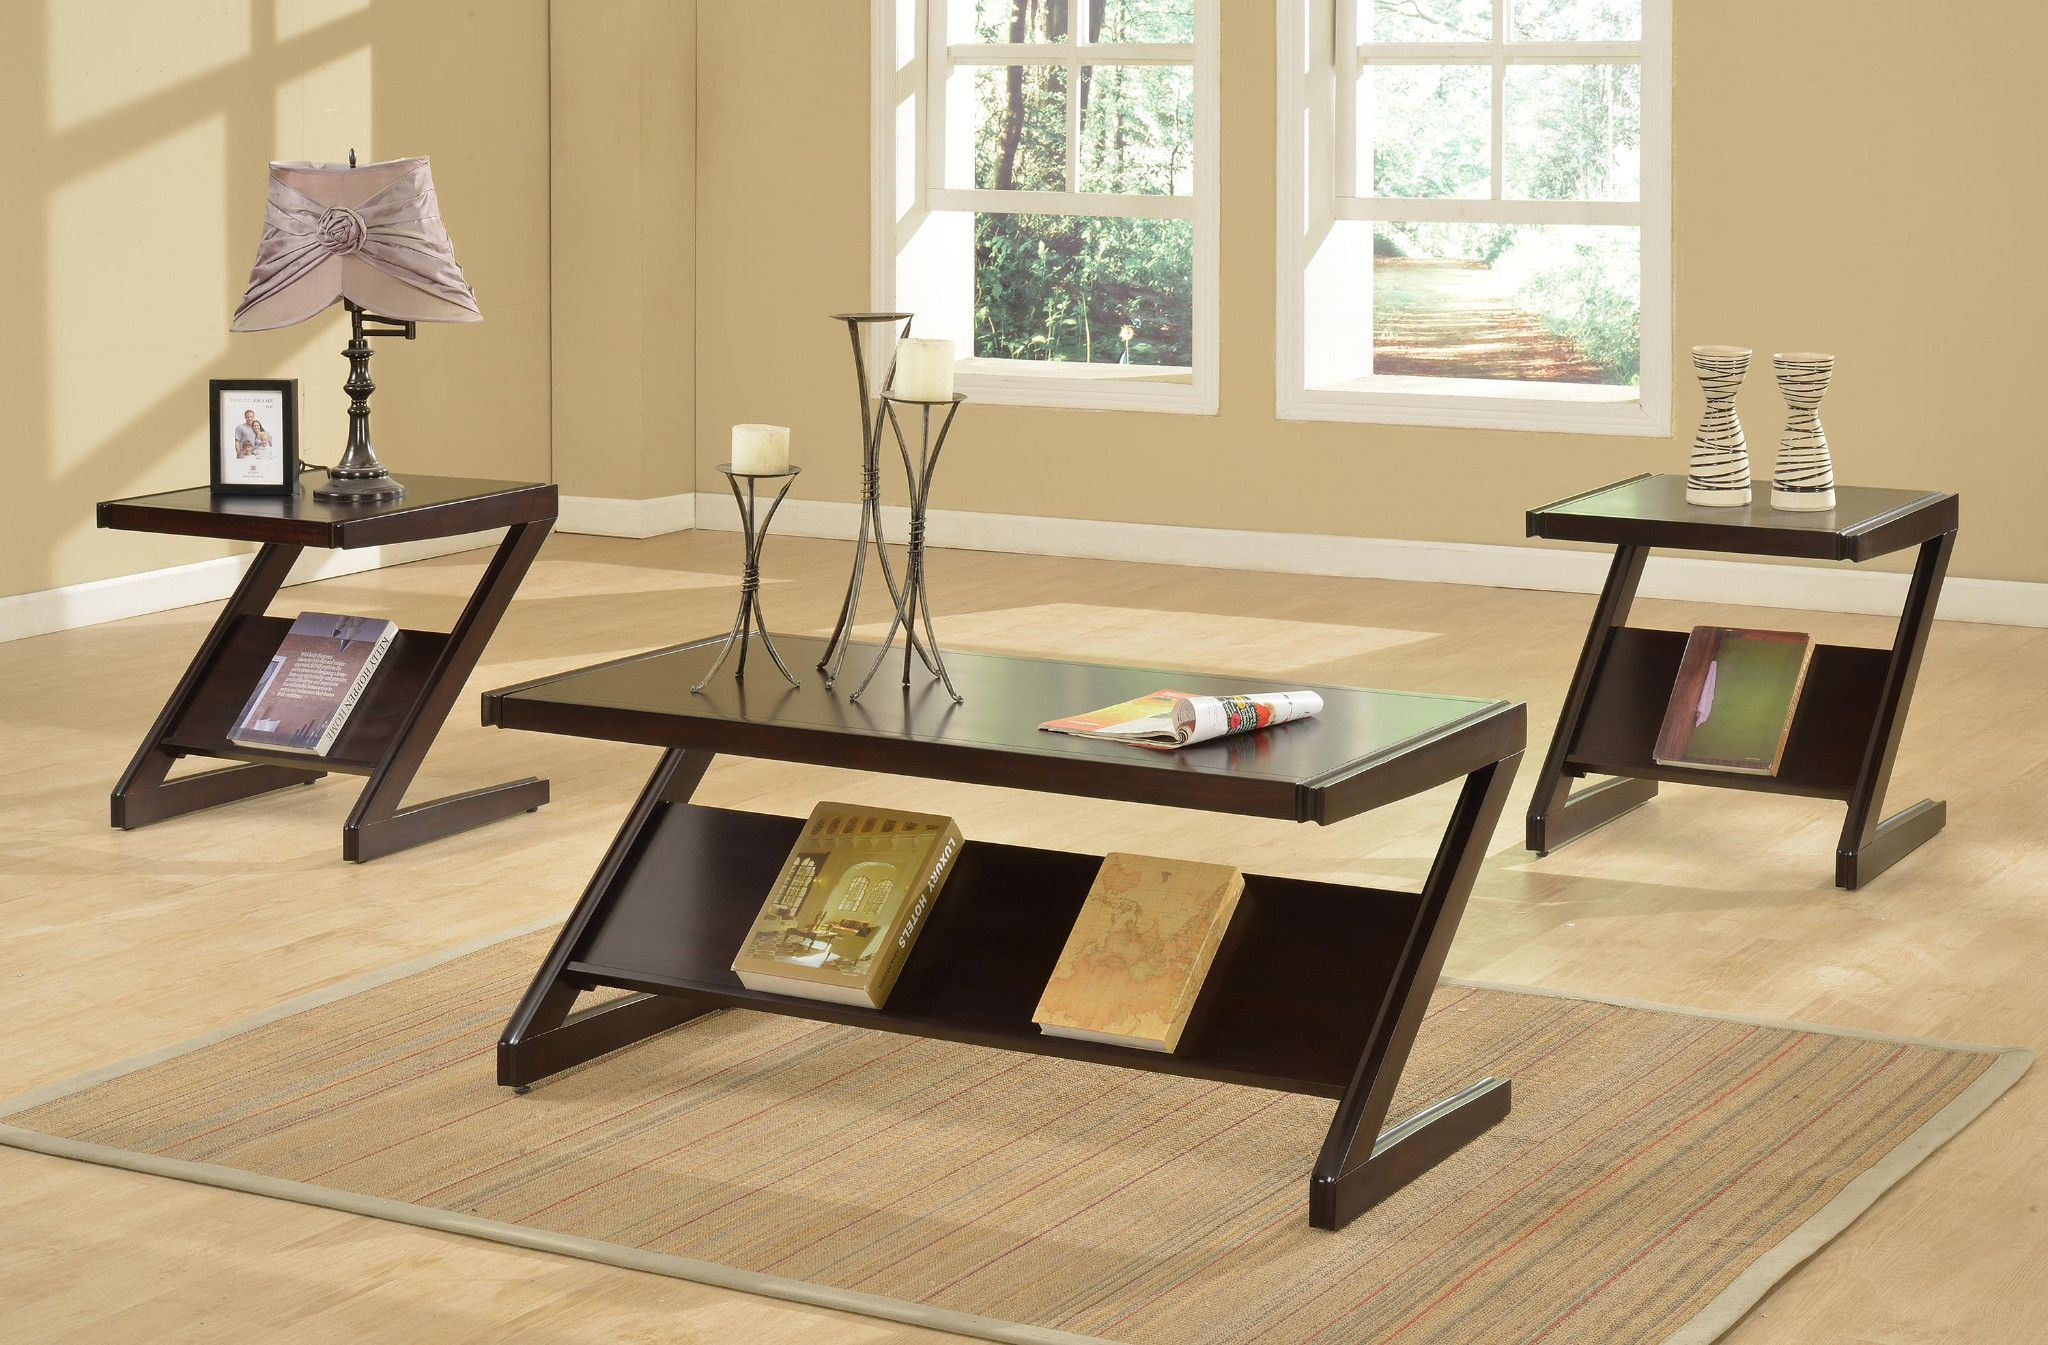 Room · Zachary 3 Piece Table Set ... & Zachary 3 Piece Table Set Coffee table and 2 End Tables $299.00 ...